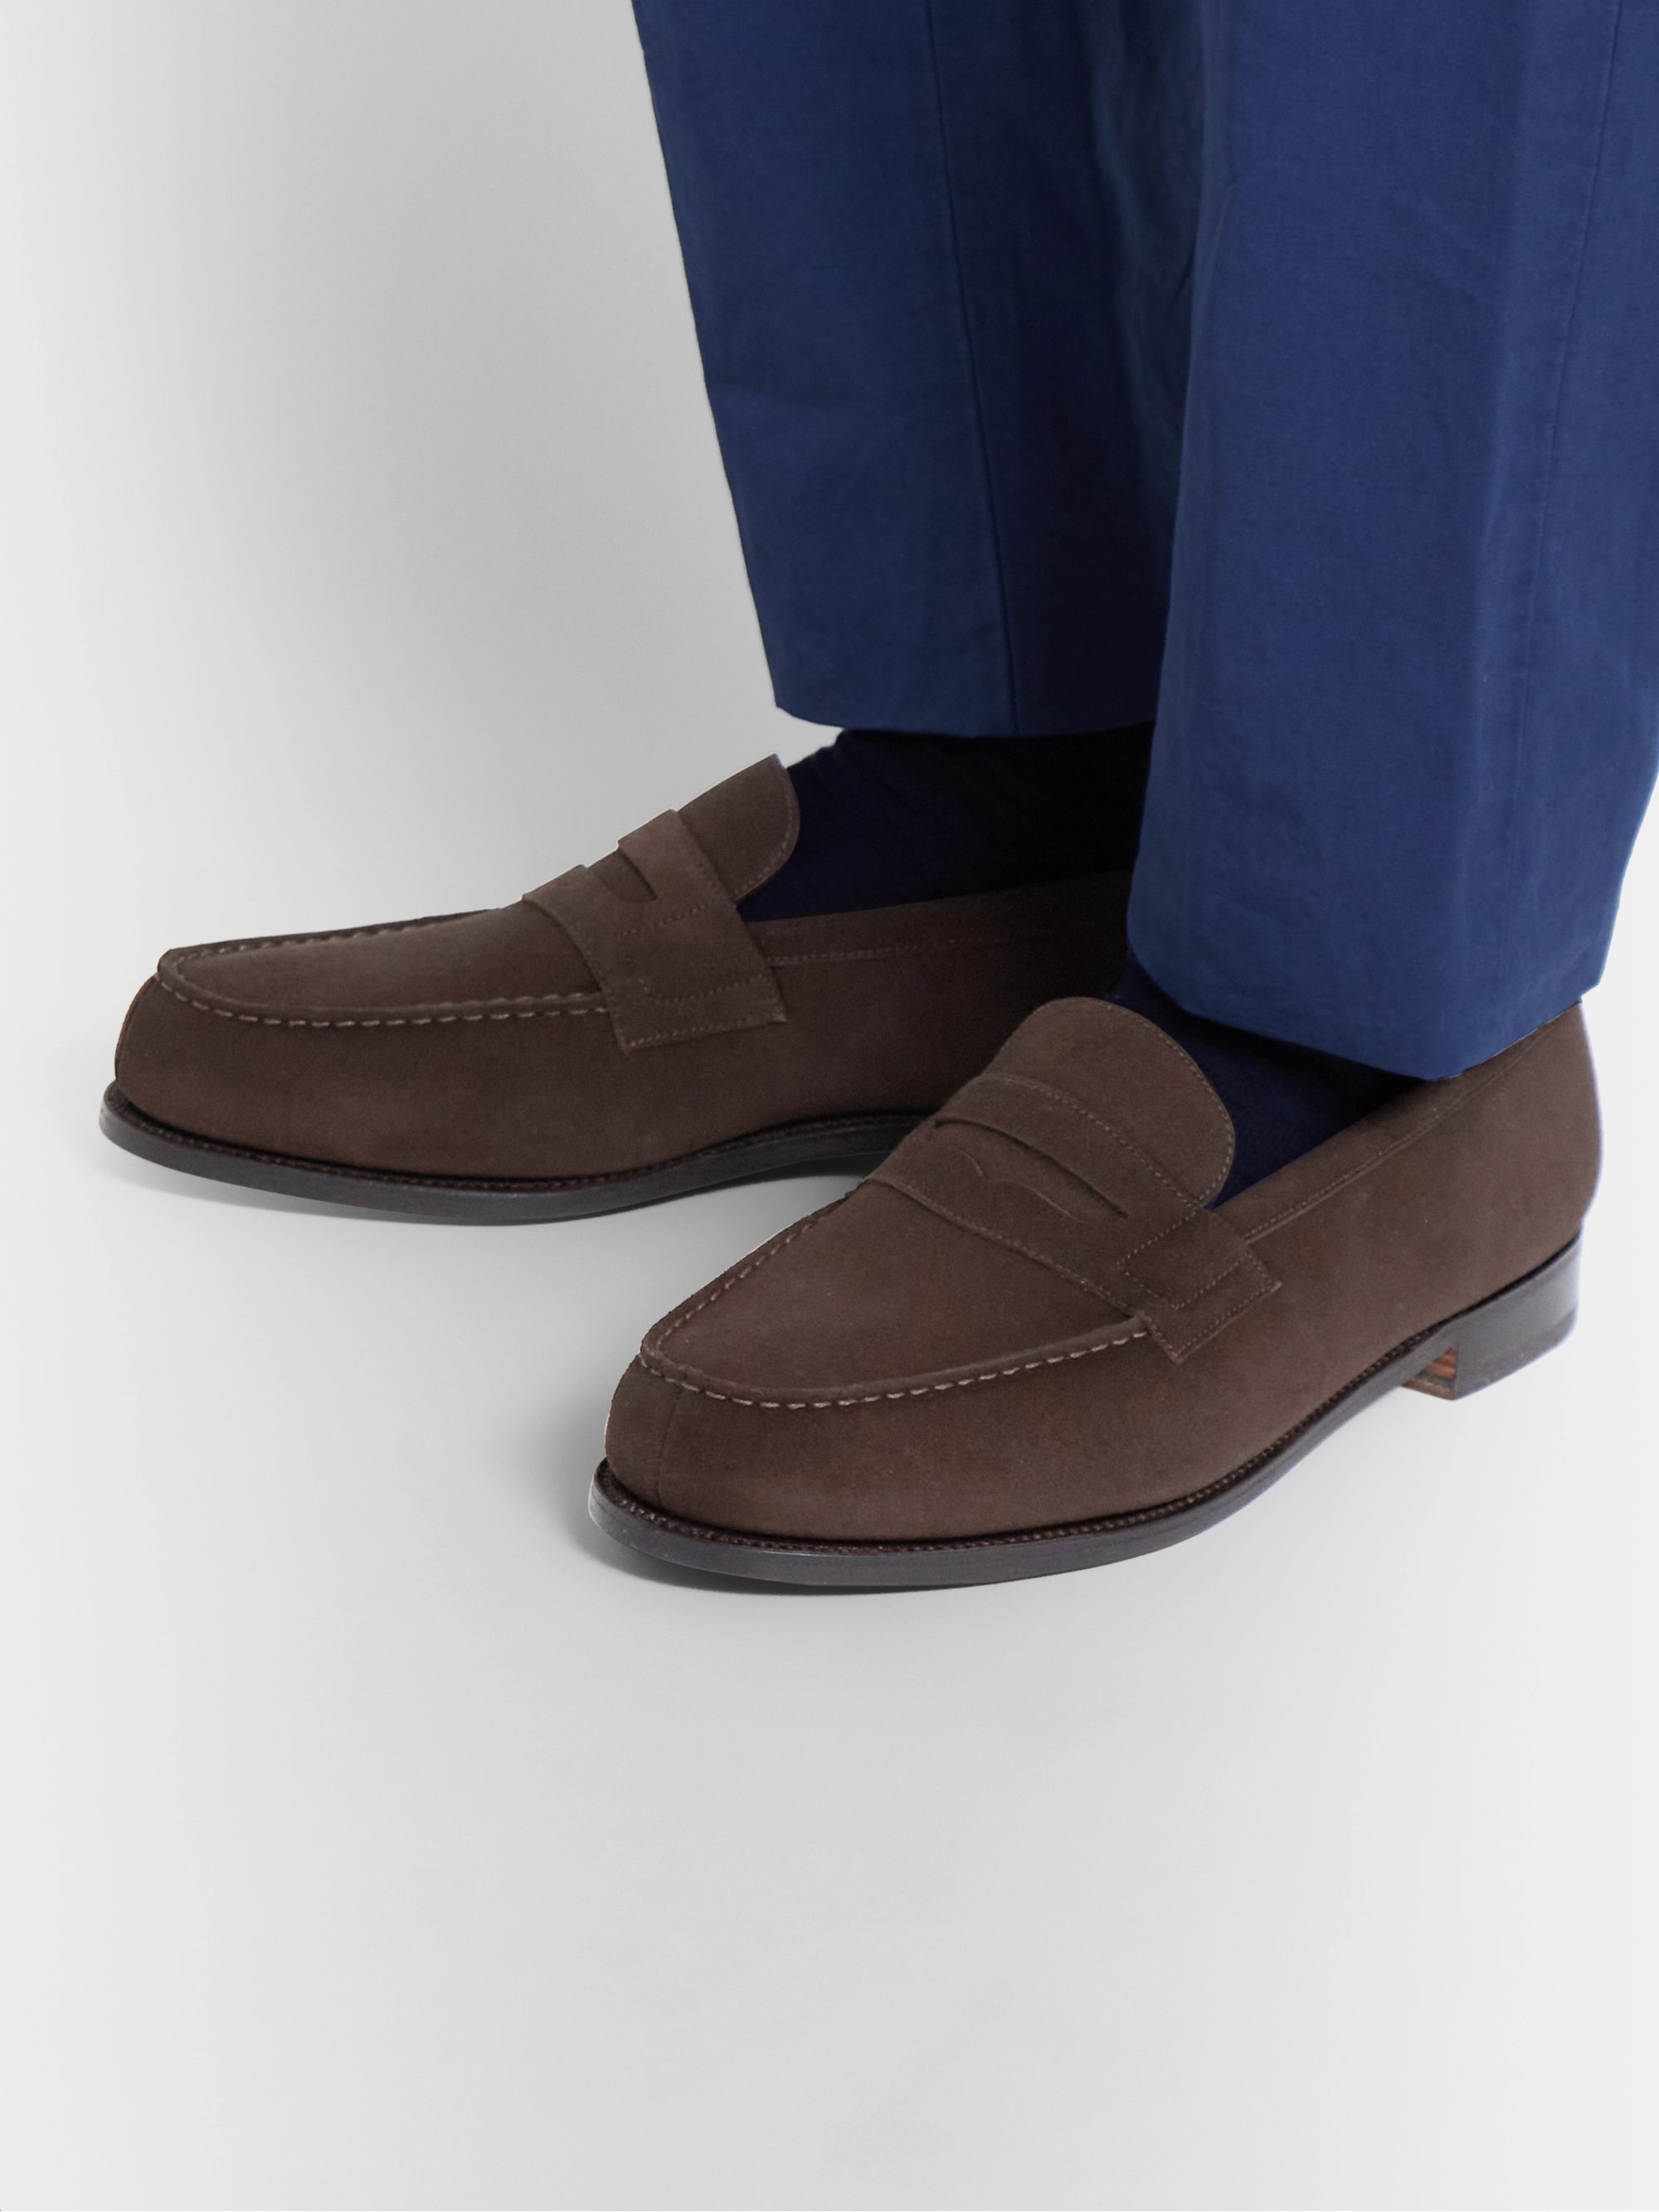 J.M. Weston 180 Moccasin Suede Loafers